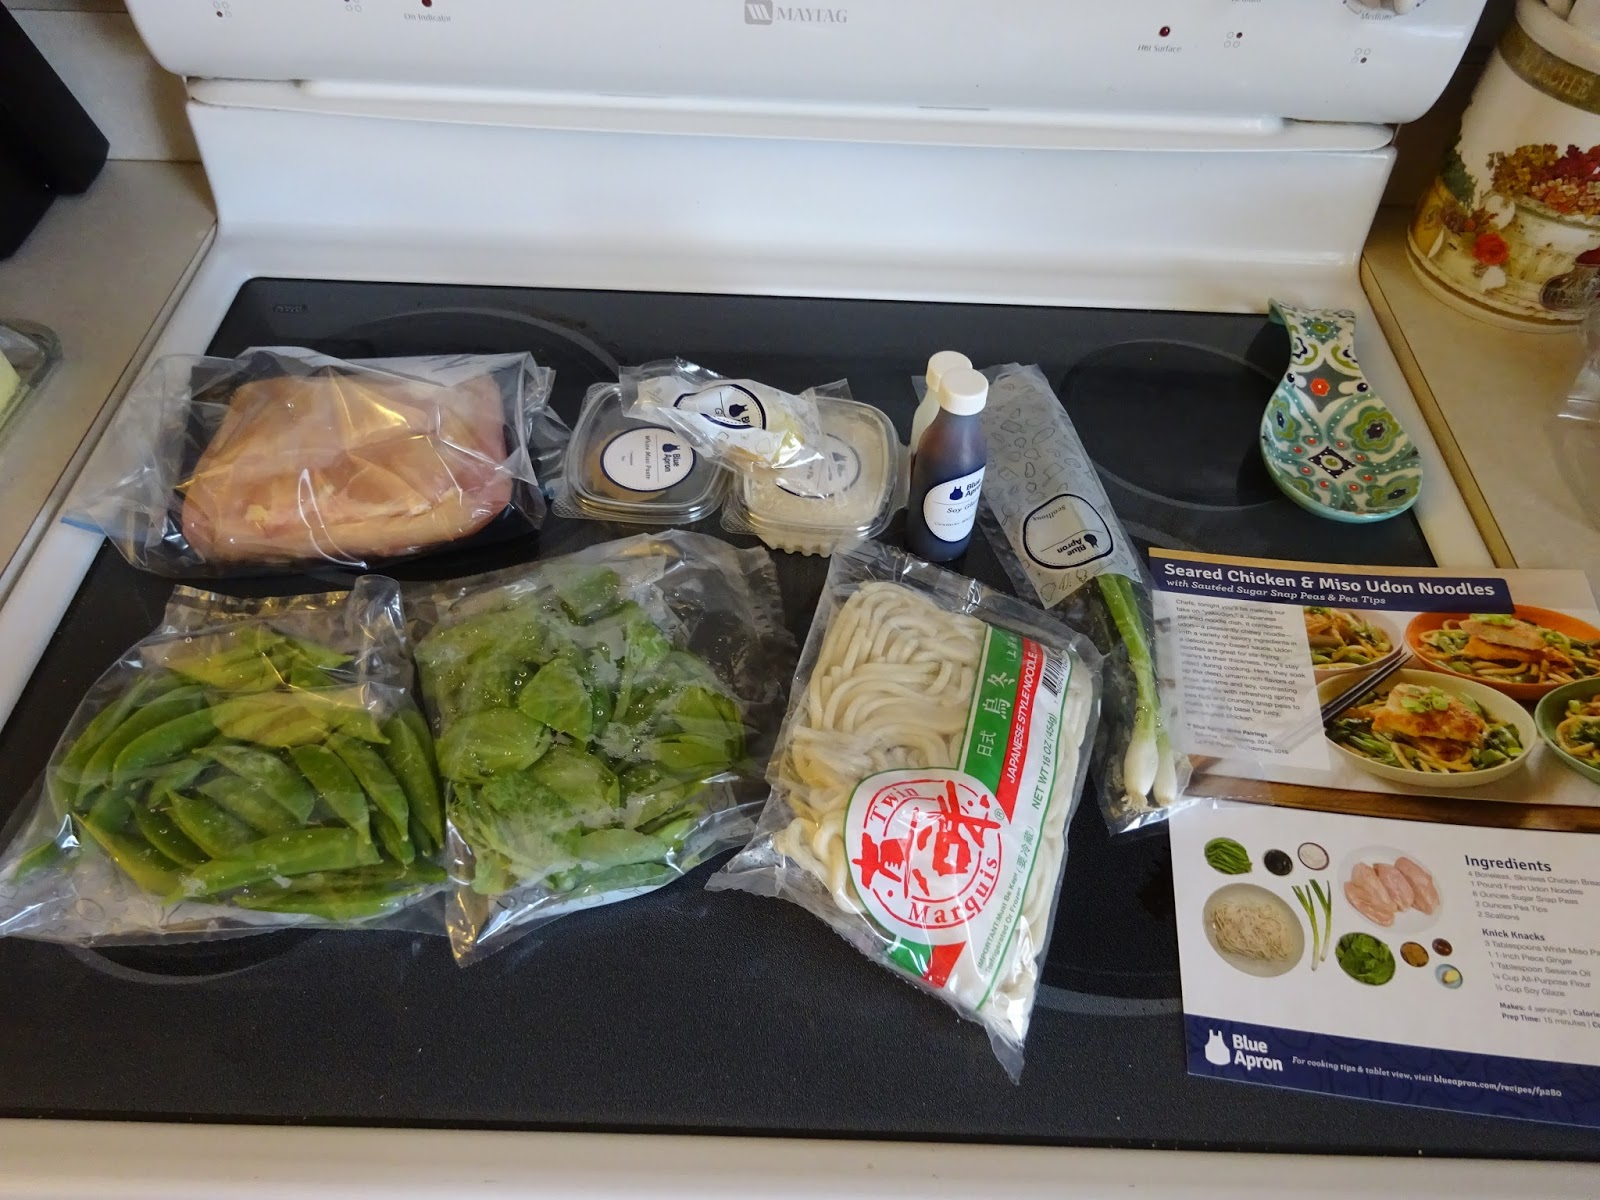 Blue apron udon miso